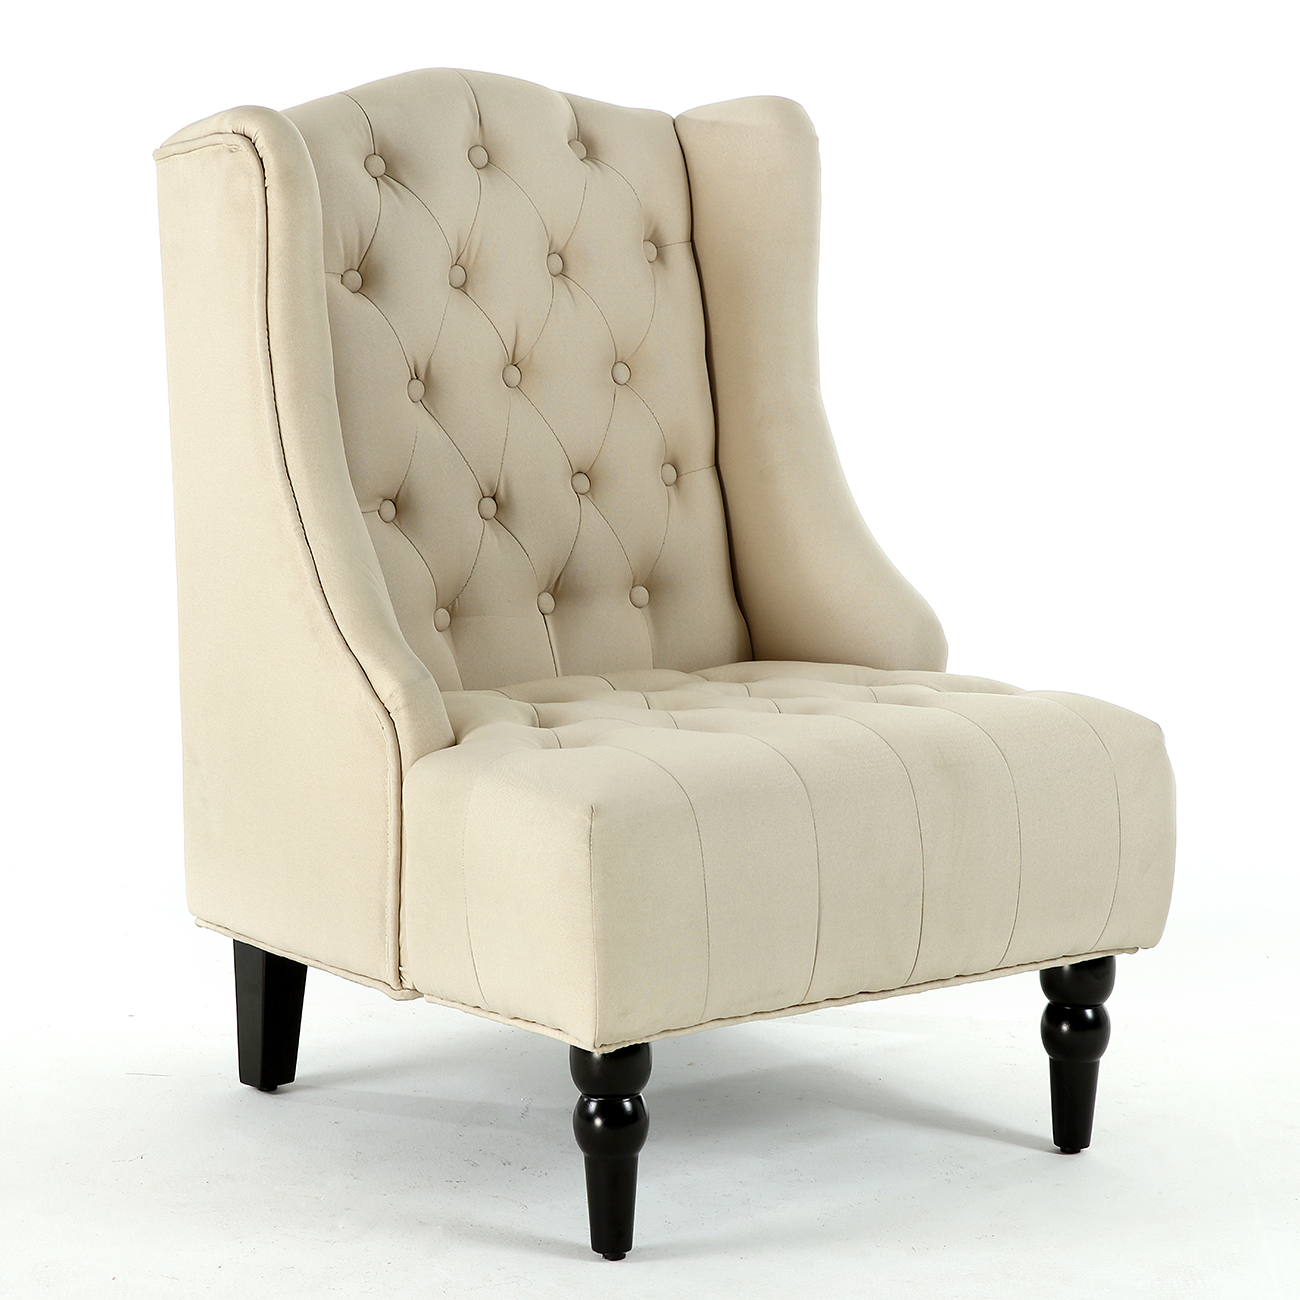 Designer Accent Chairs: NEW Modern Wingback Accent Chair Diamond-Tufted Linen